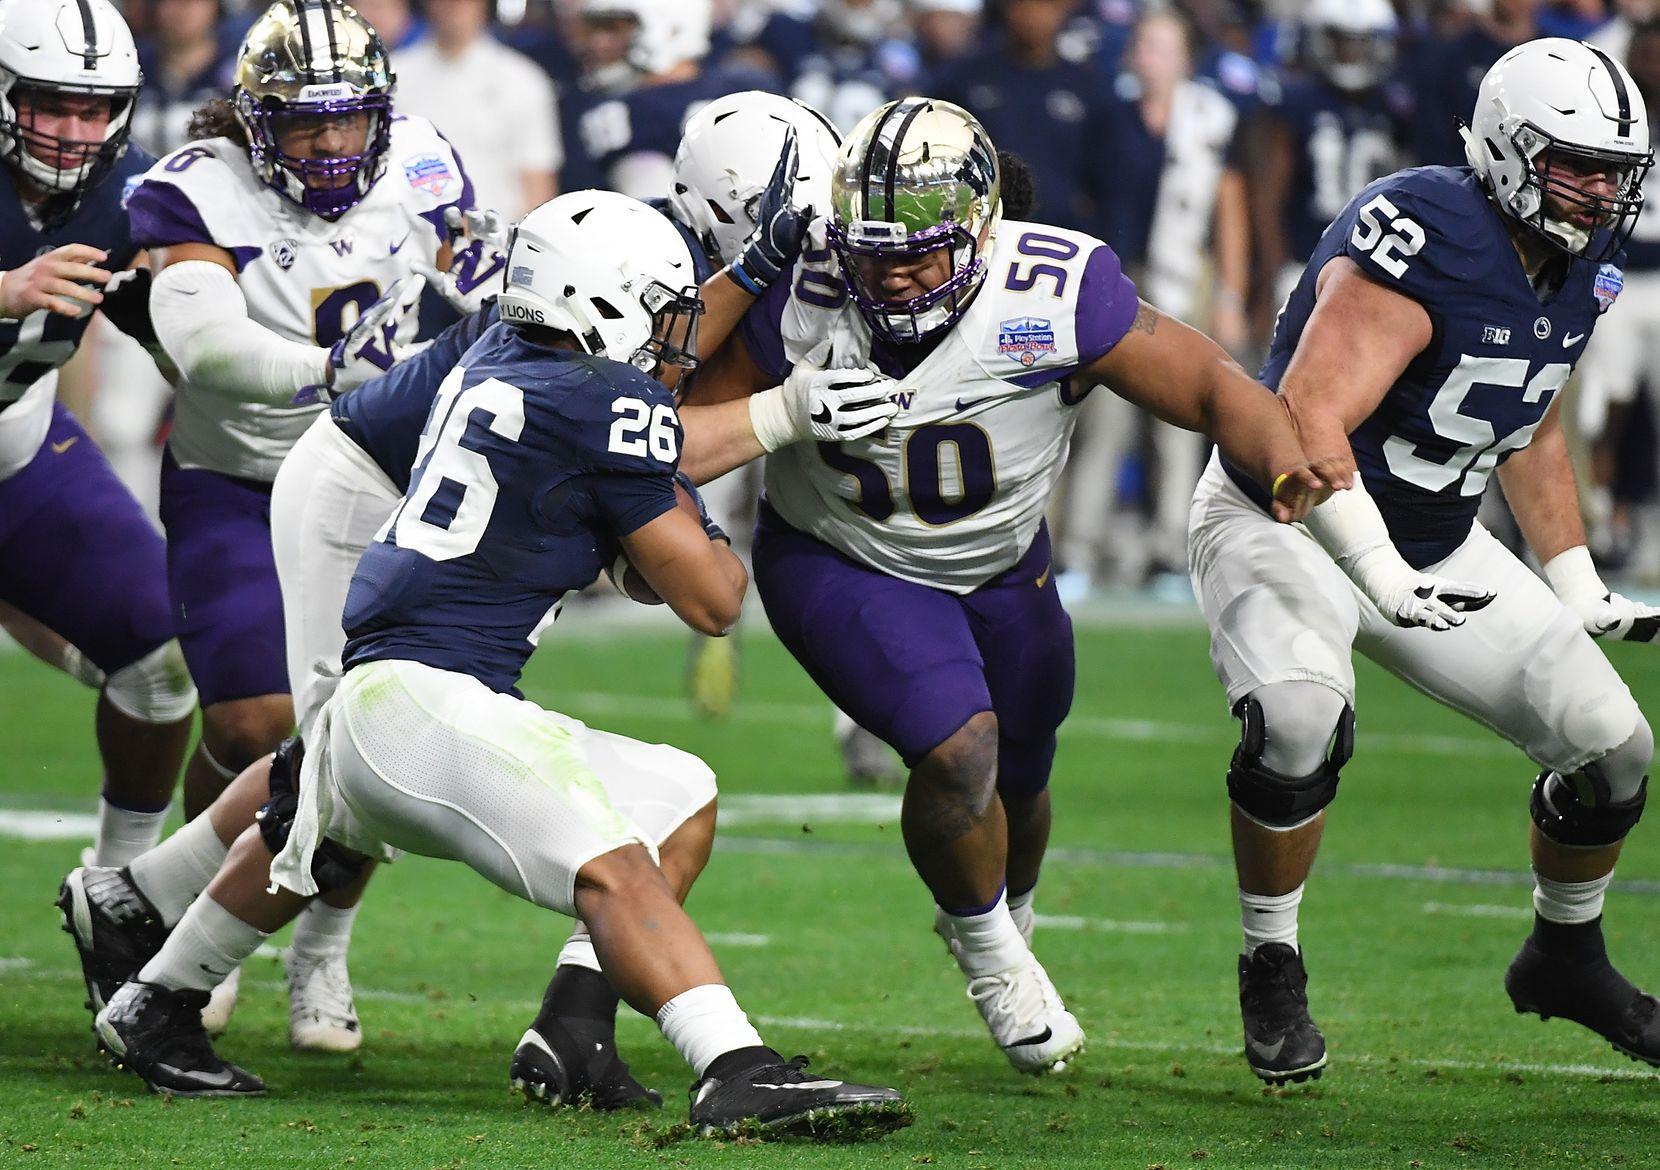 GLENDALE, AZ - DECEMBER 30: Washington defensive tackle Vita Vea (#50) attempts to tackle Penn State running back Saquon Barkley during the Fiesta Bowl at University of Phoenix Stadium on Dec. 30, 2017, in Glendale, Ariz.  (Photo by Norm Hall/Getty Images)